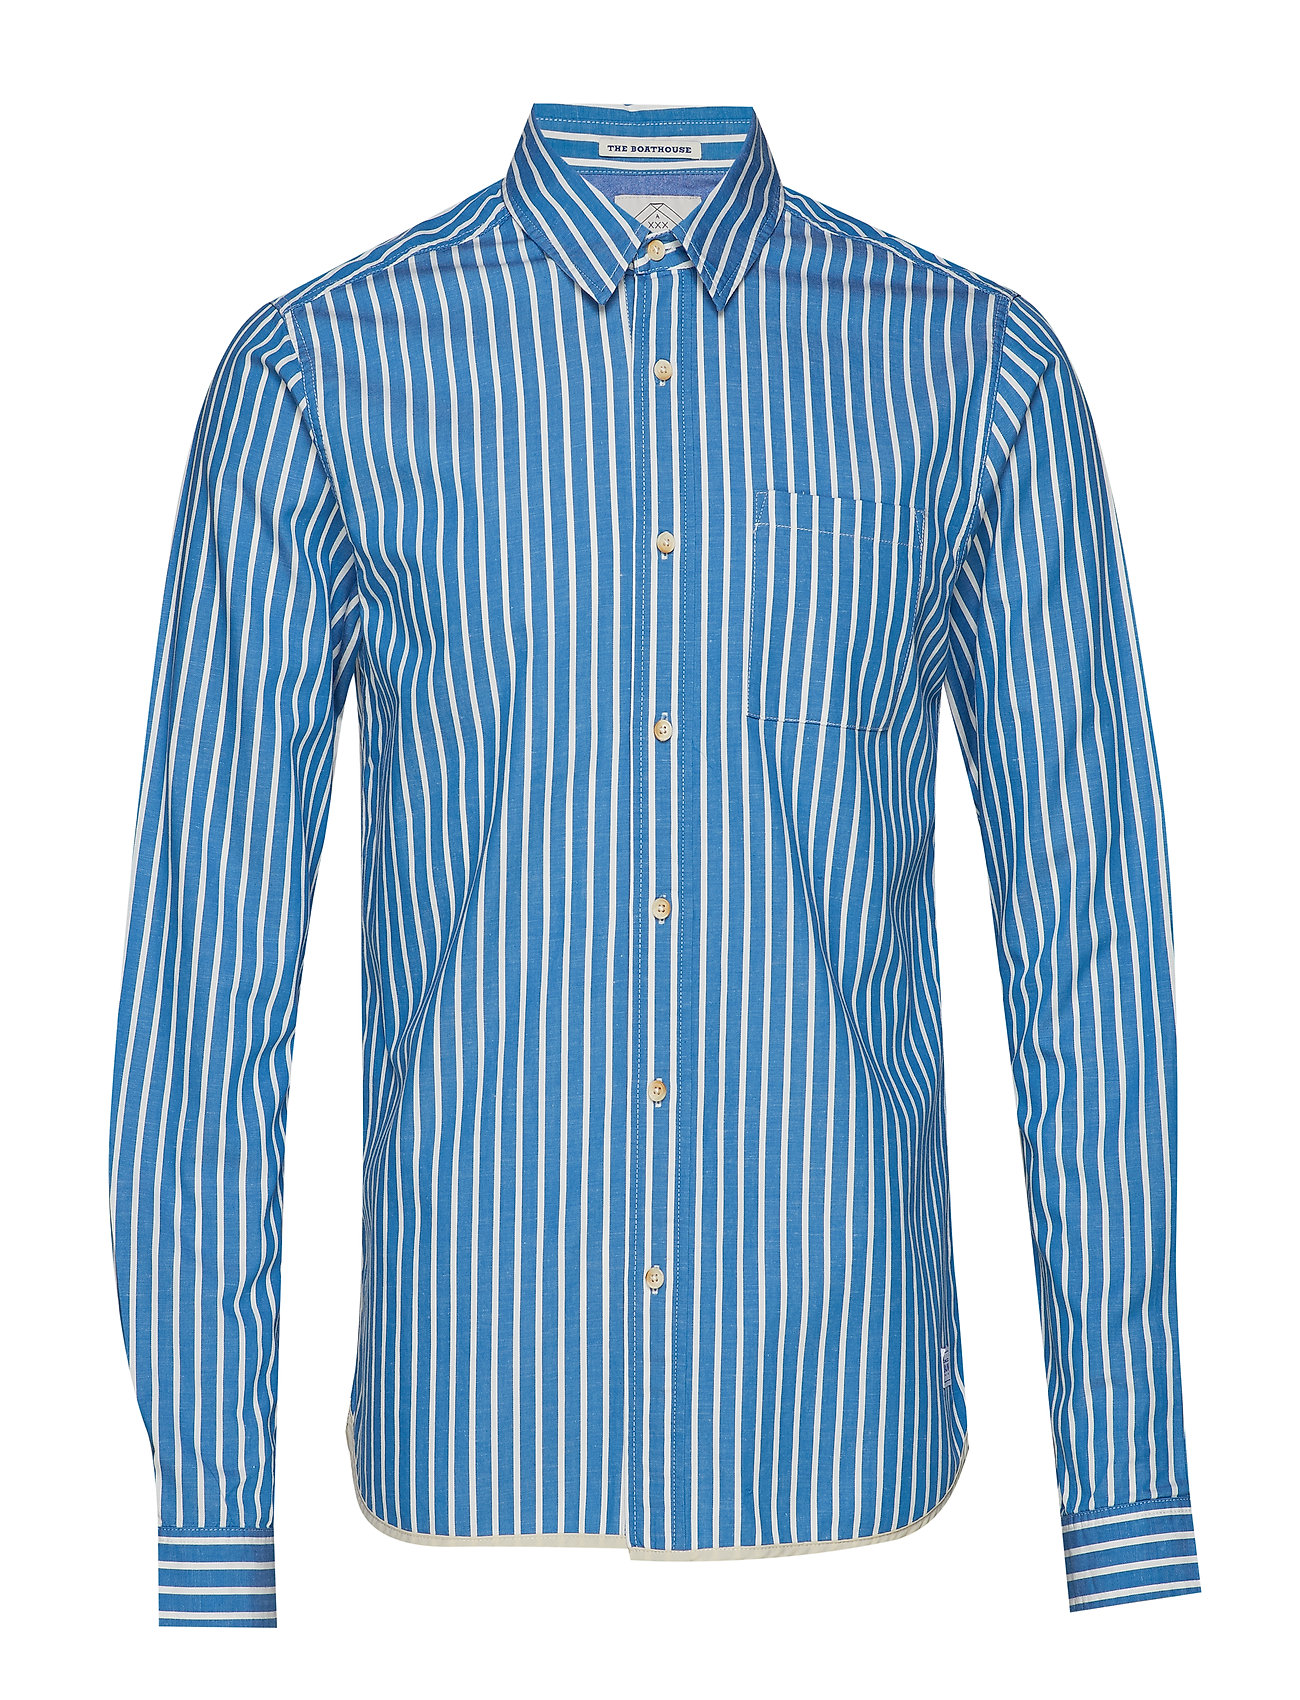 Scotch & Soda Regular fit deck chair stripe shirt - COMBO A